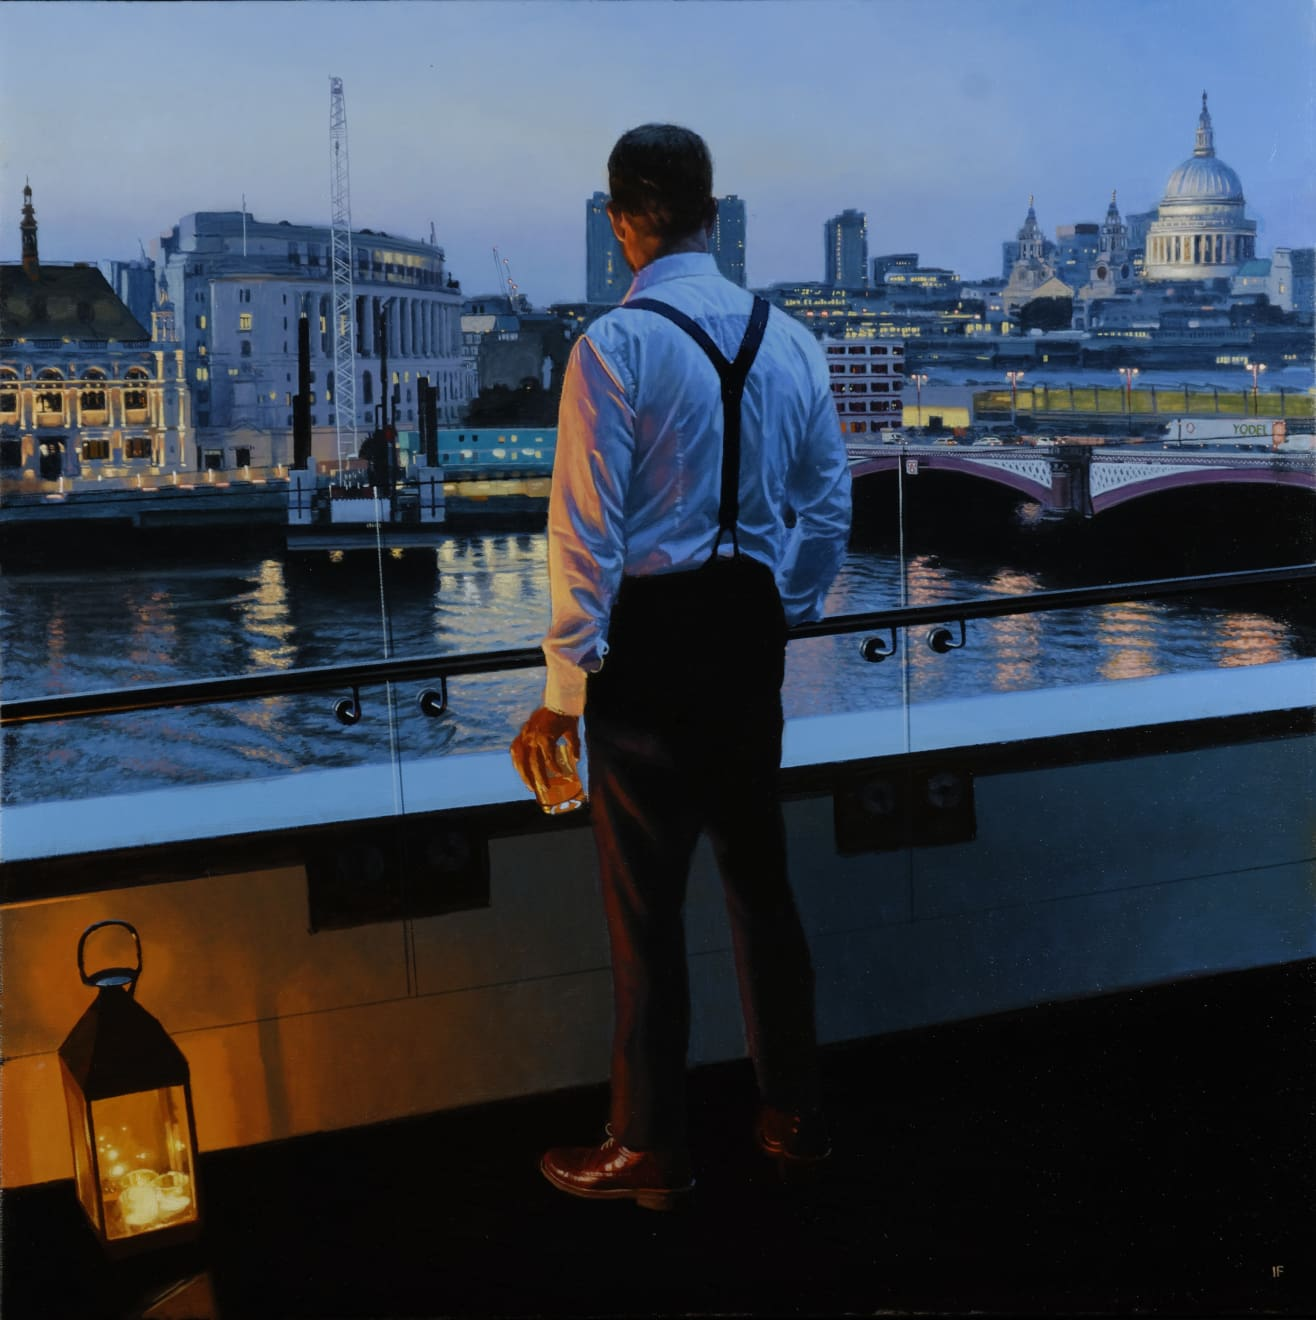 Iain Faulkner, Evening, Blackfriars Bridge, 2018